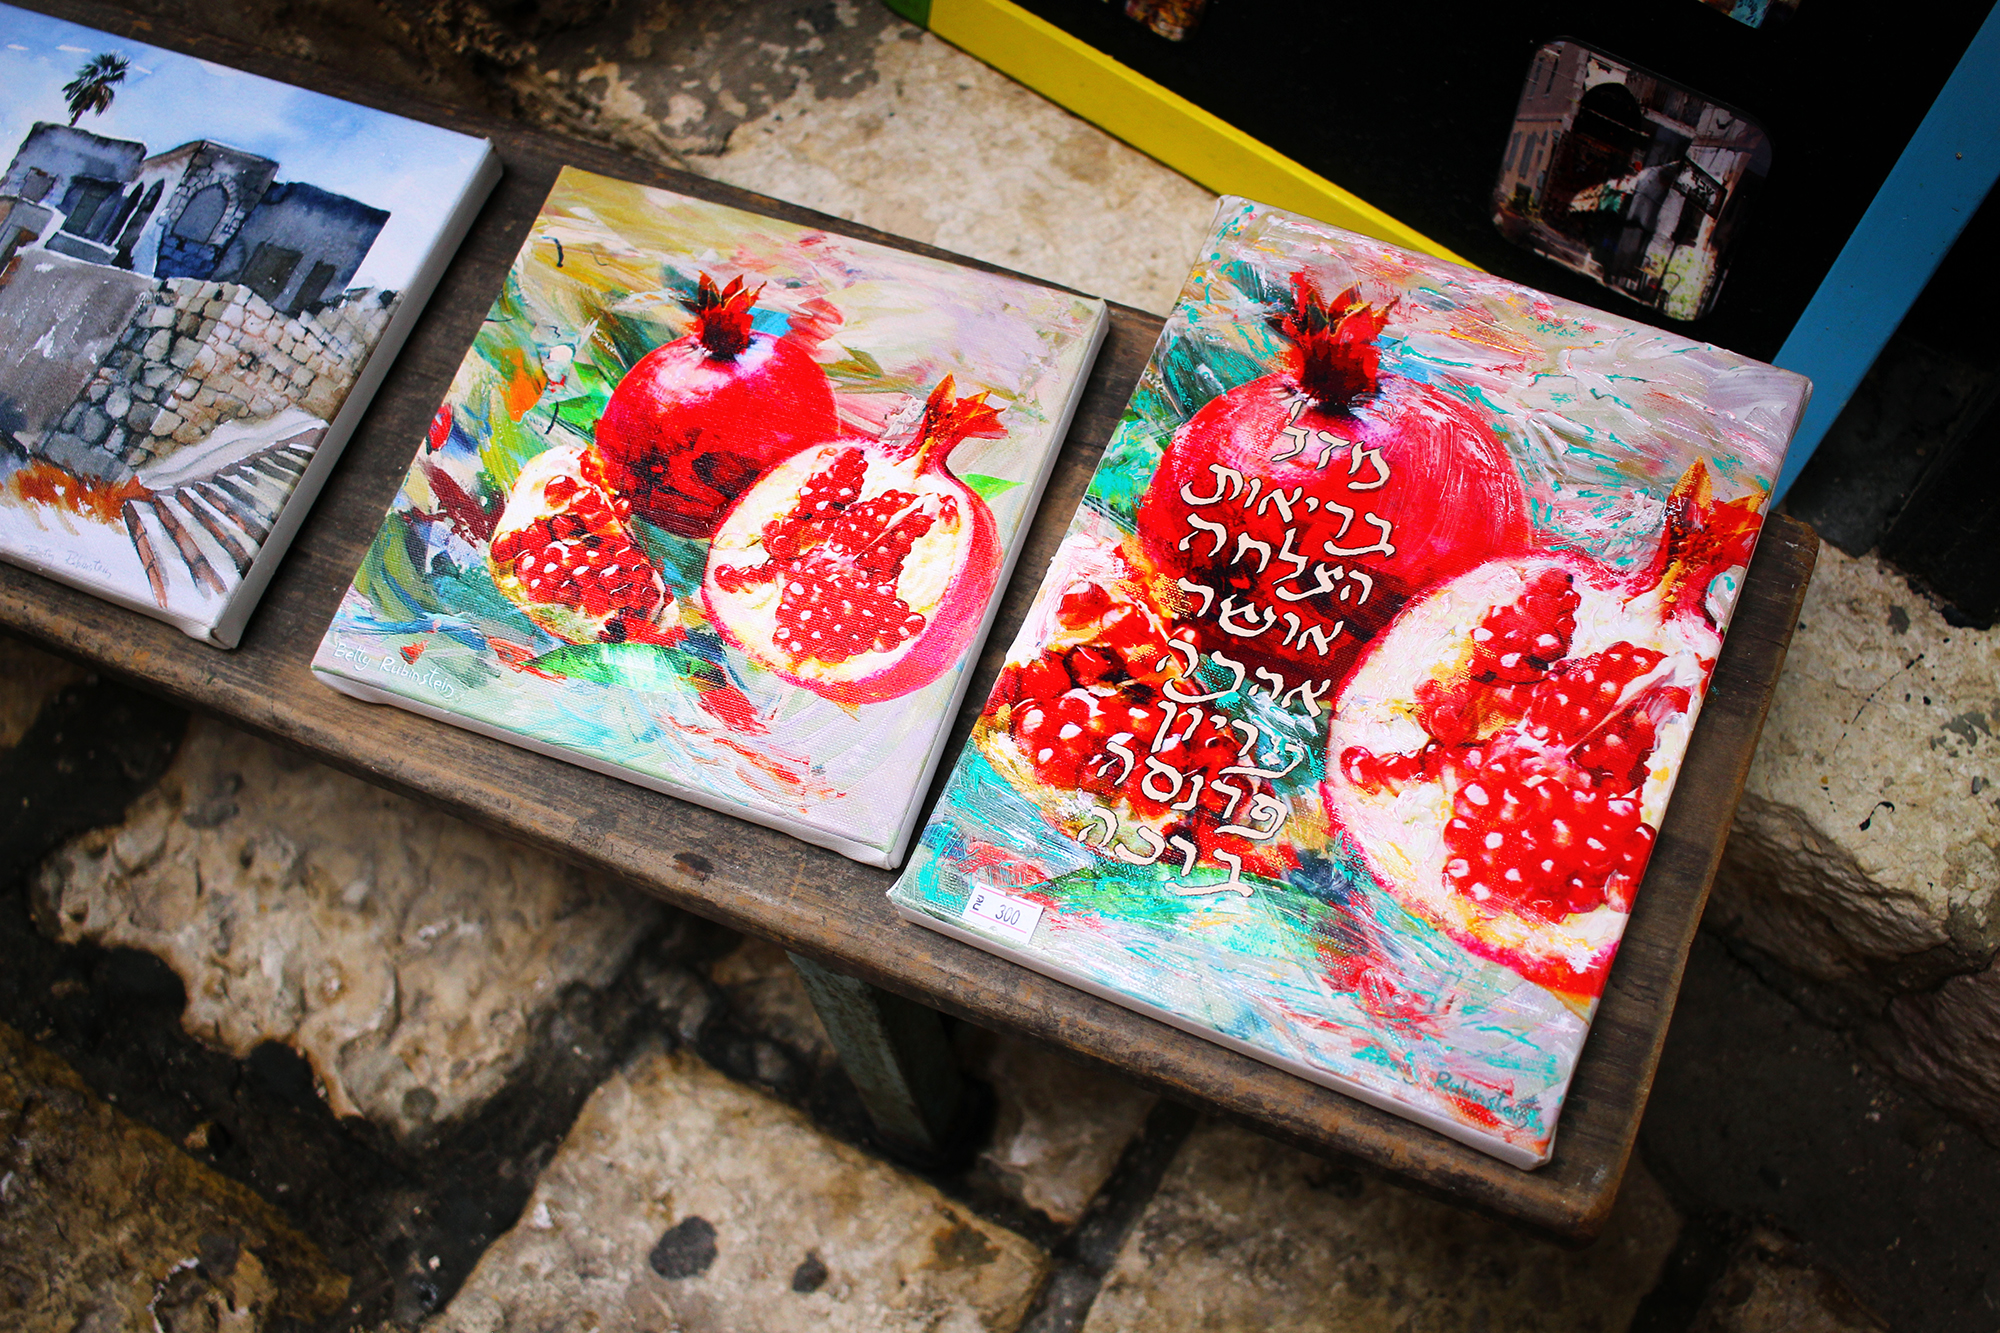 Paintings by Betty Rubinstein outside her gallery in Old Jaffa, Tel-Aviv, Israel. Photography by Geena Matuson @geenamatuson #thegirlmirage.